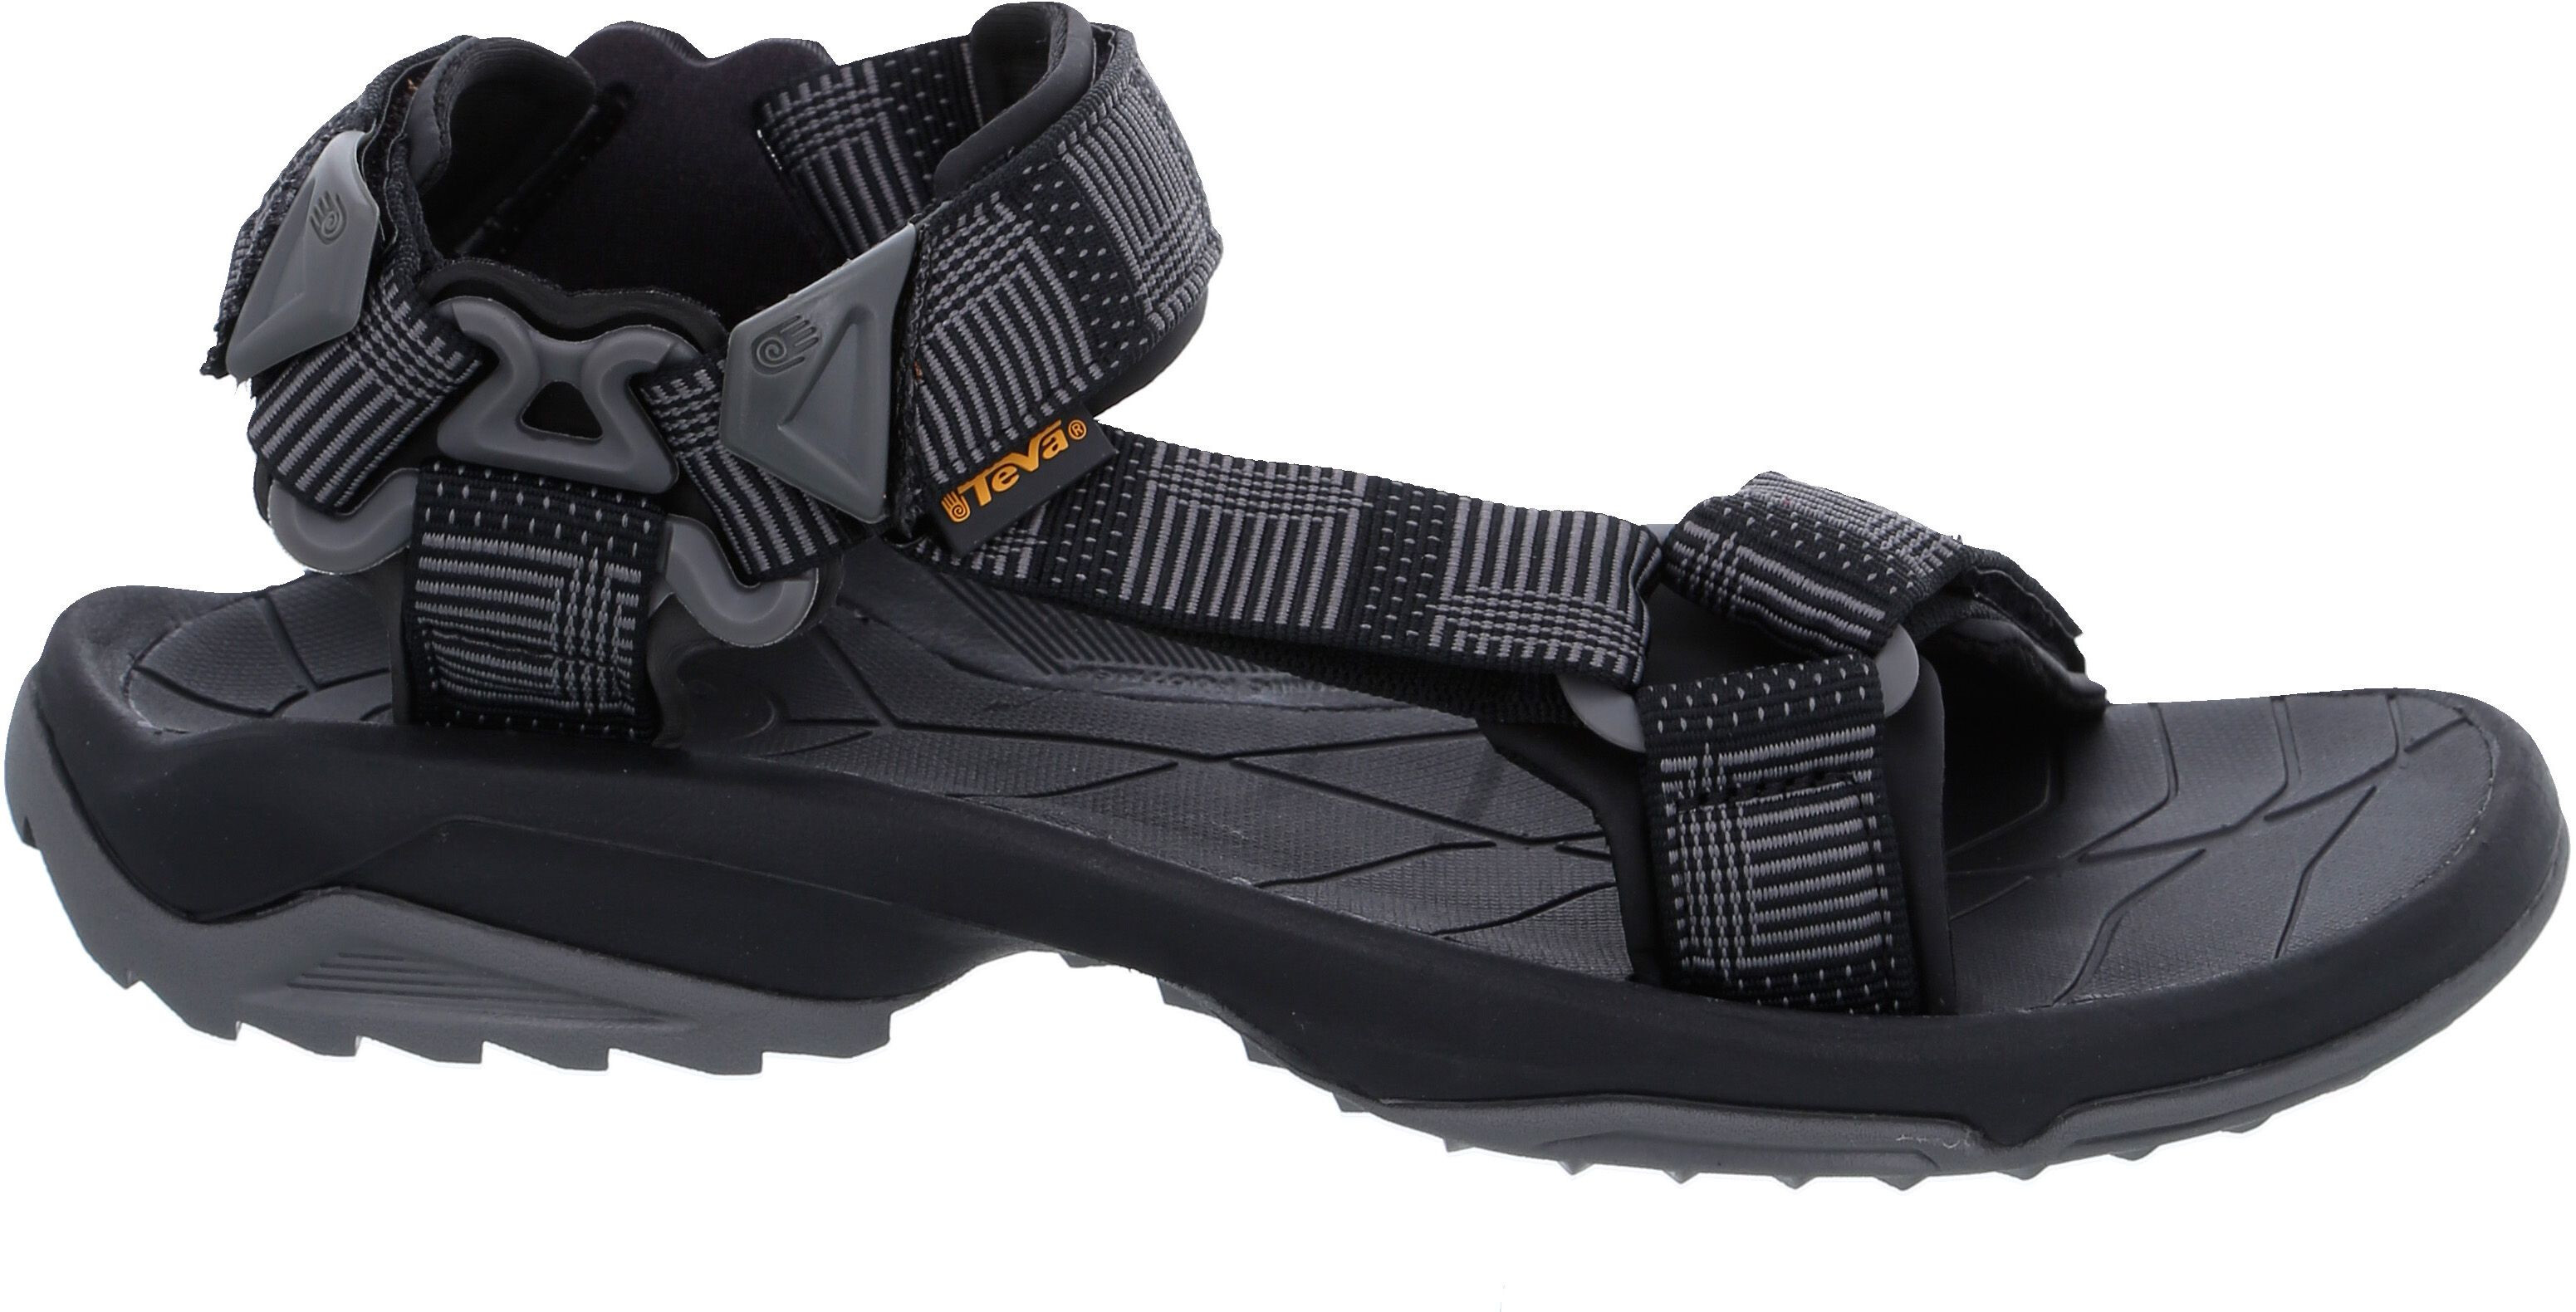 3808a9bed55728 Teva Terra Fi Lite Sandals Men grey black at Addnature.co.uk